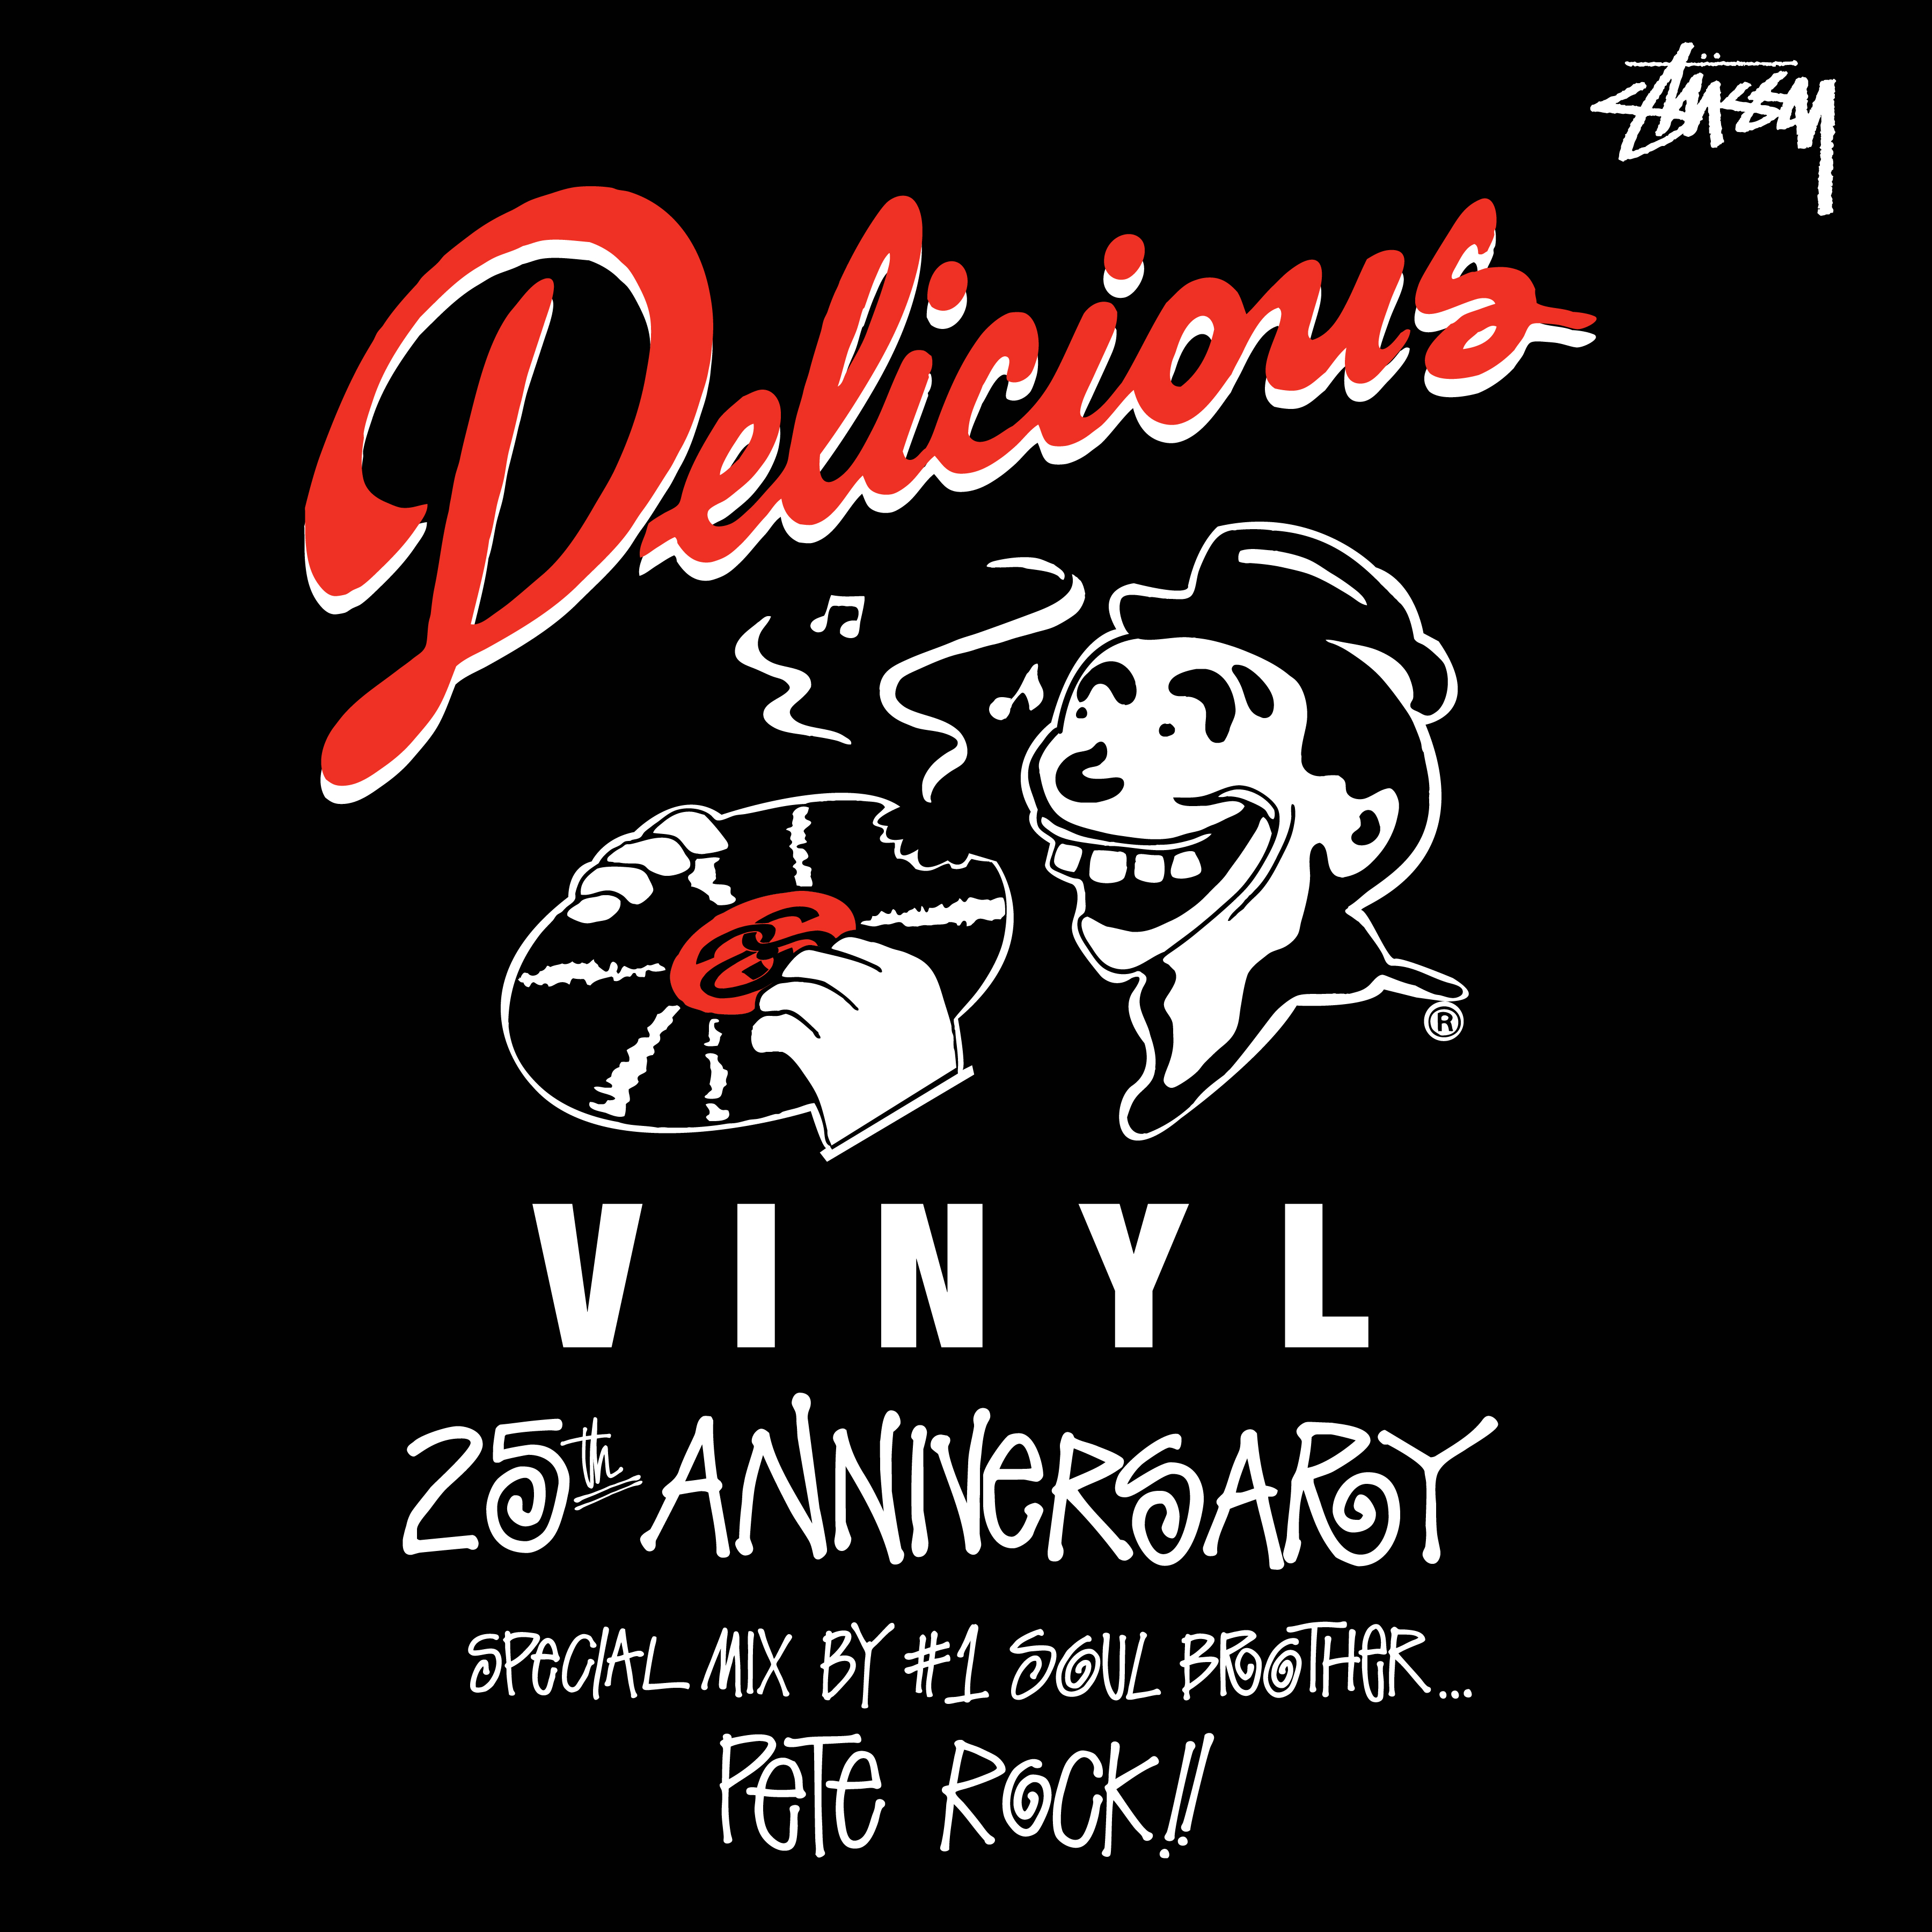 Pete Rock - Delicious Vinyl 25th Anniversary Mix